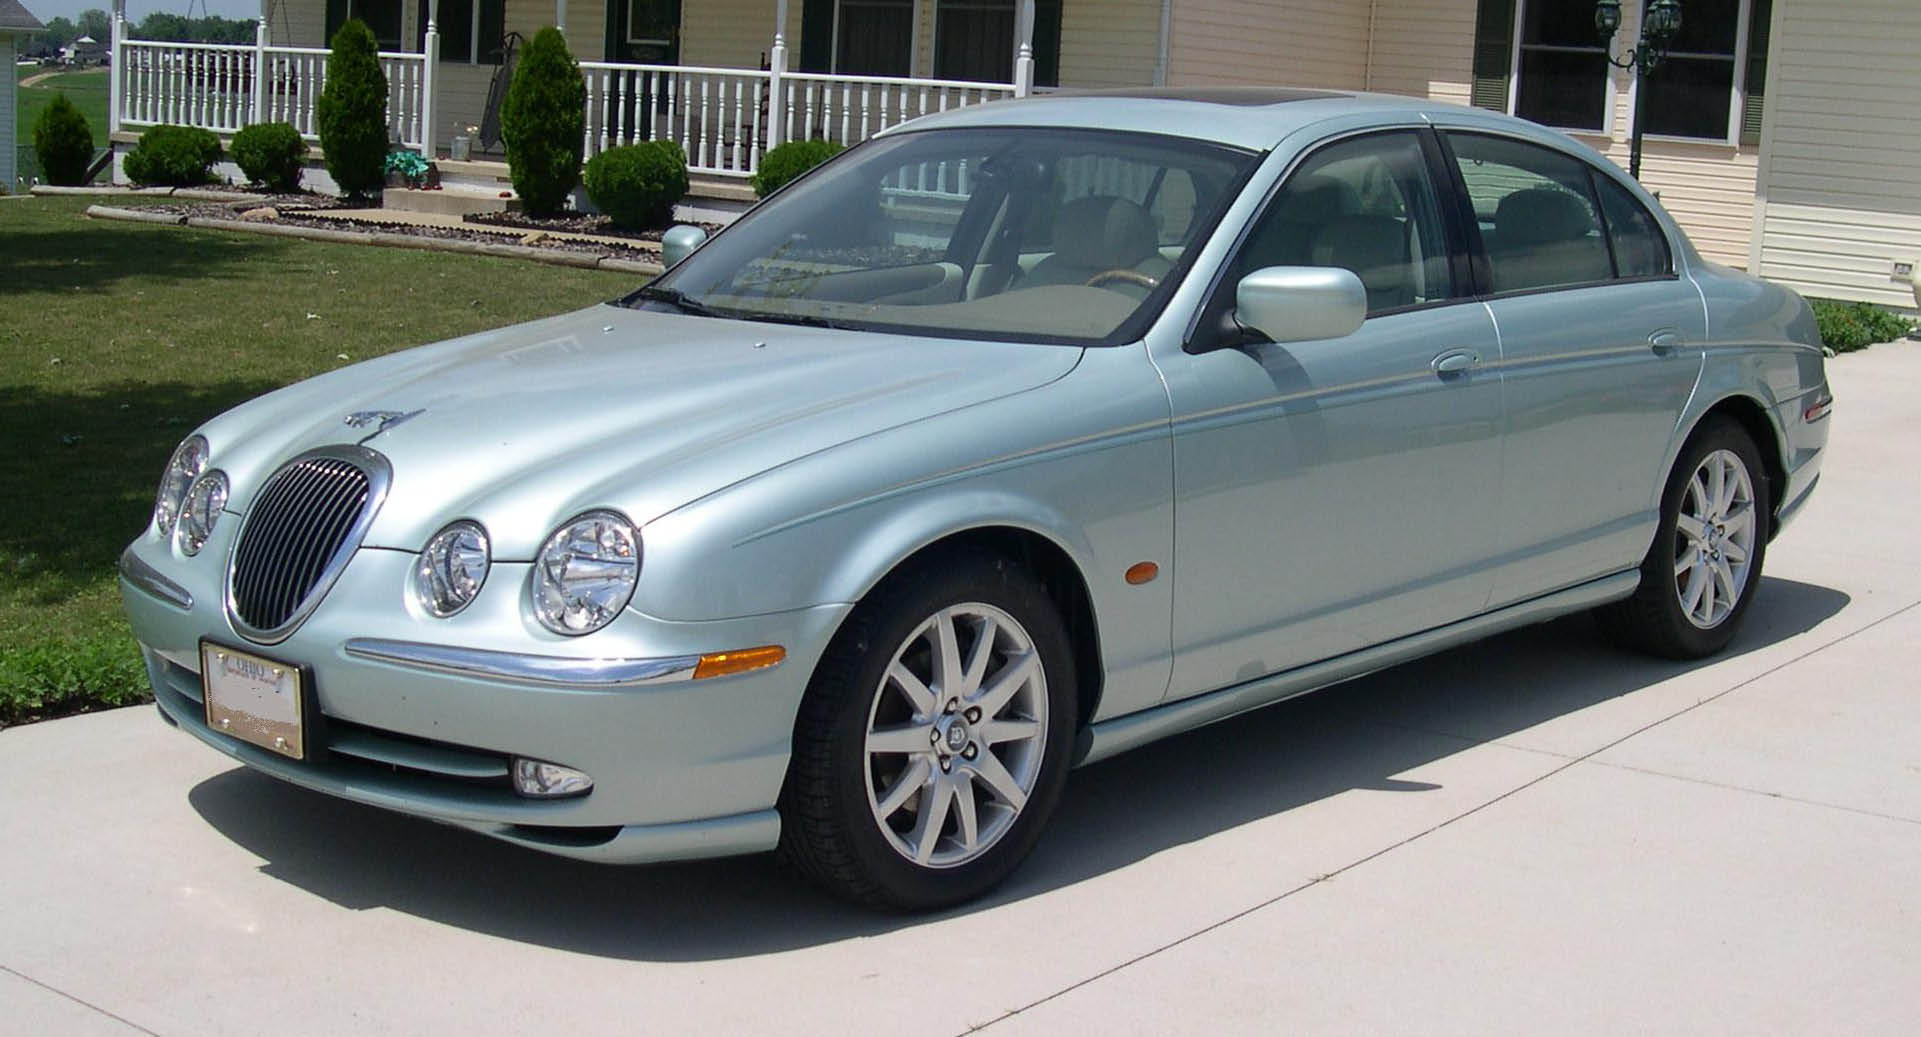 2005 Jaguar S-type #2